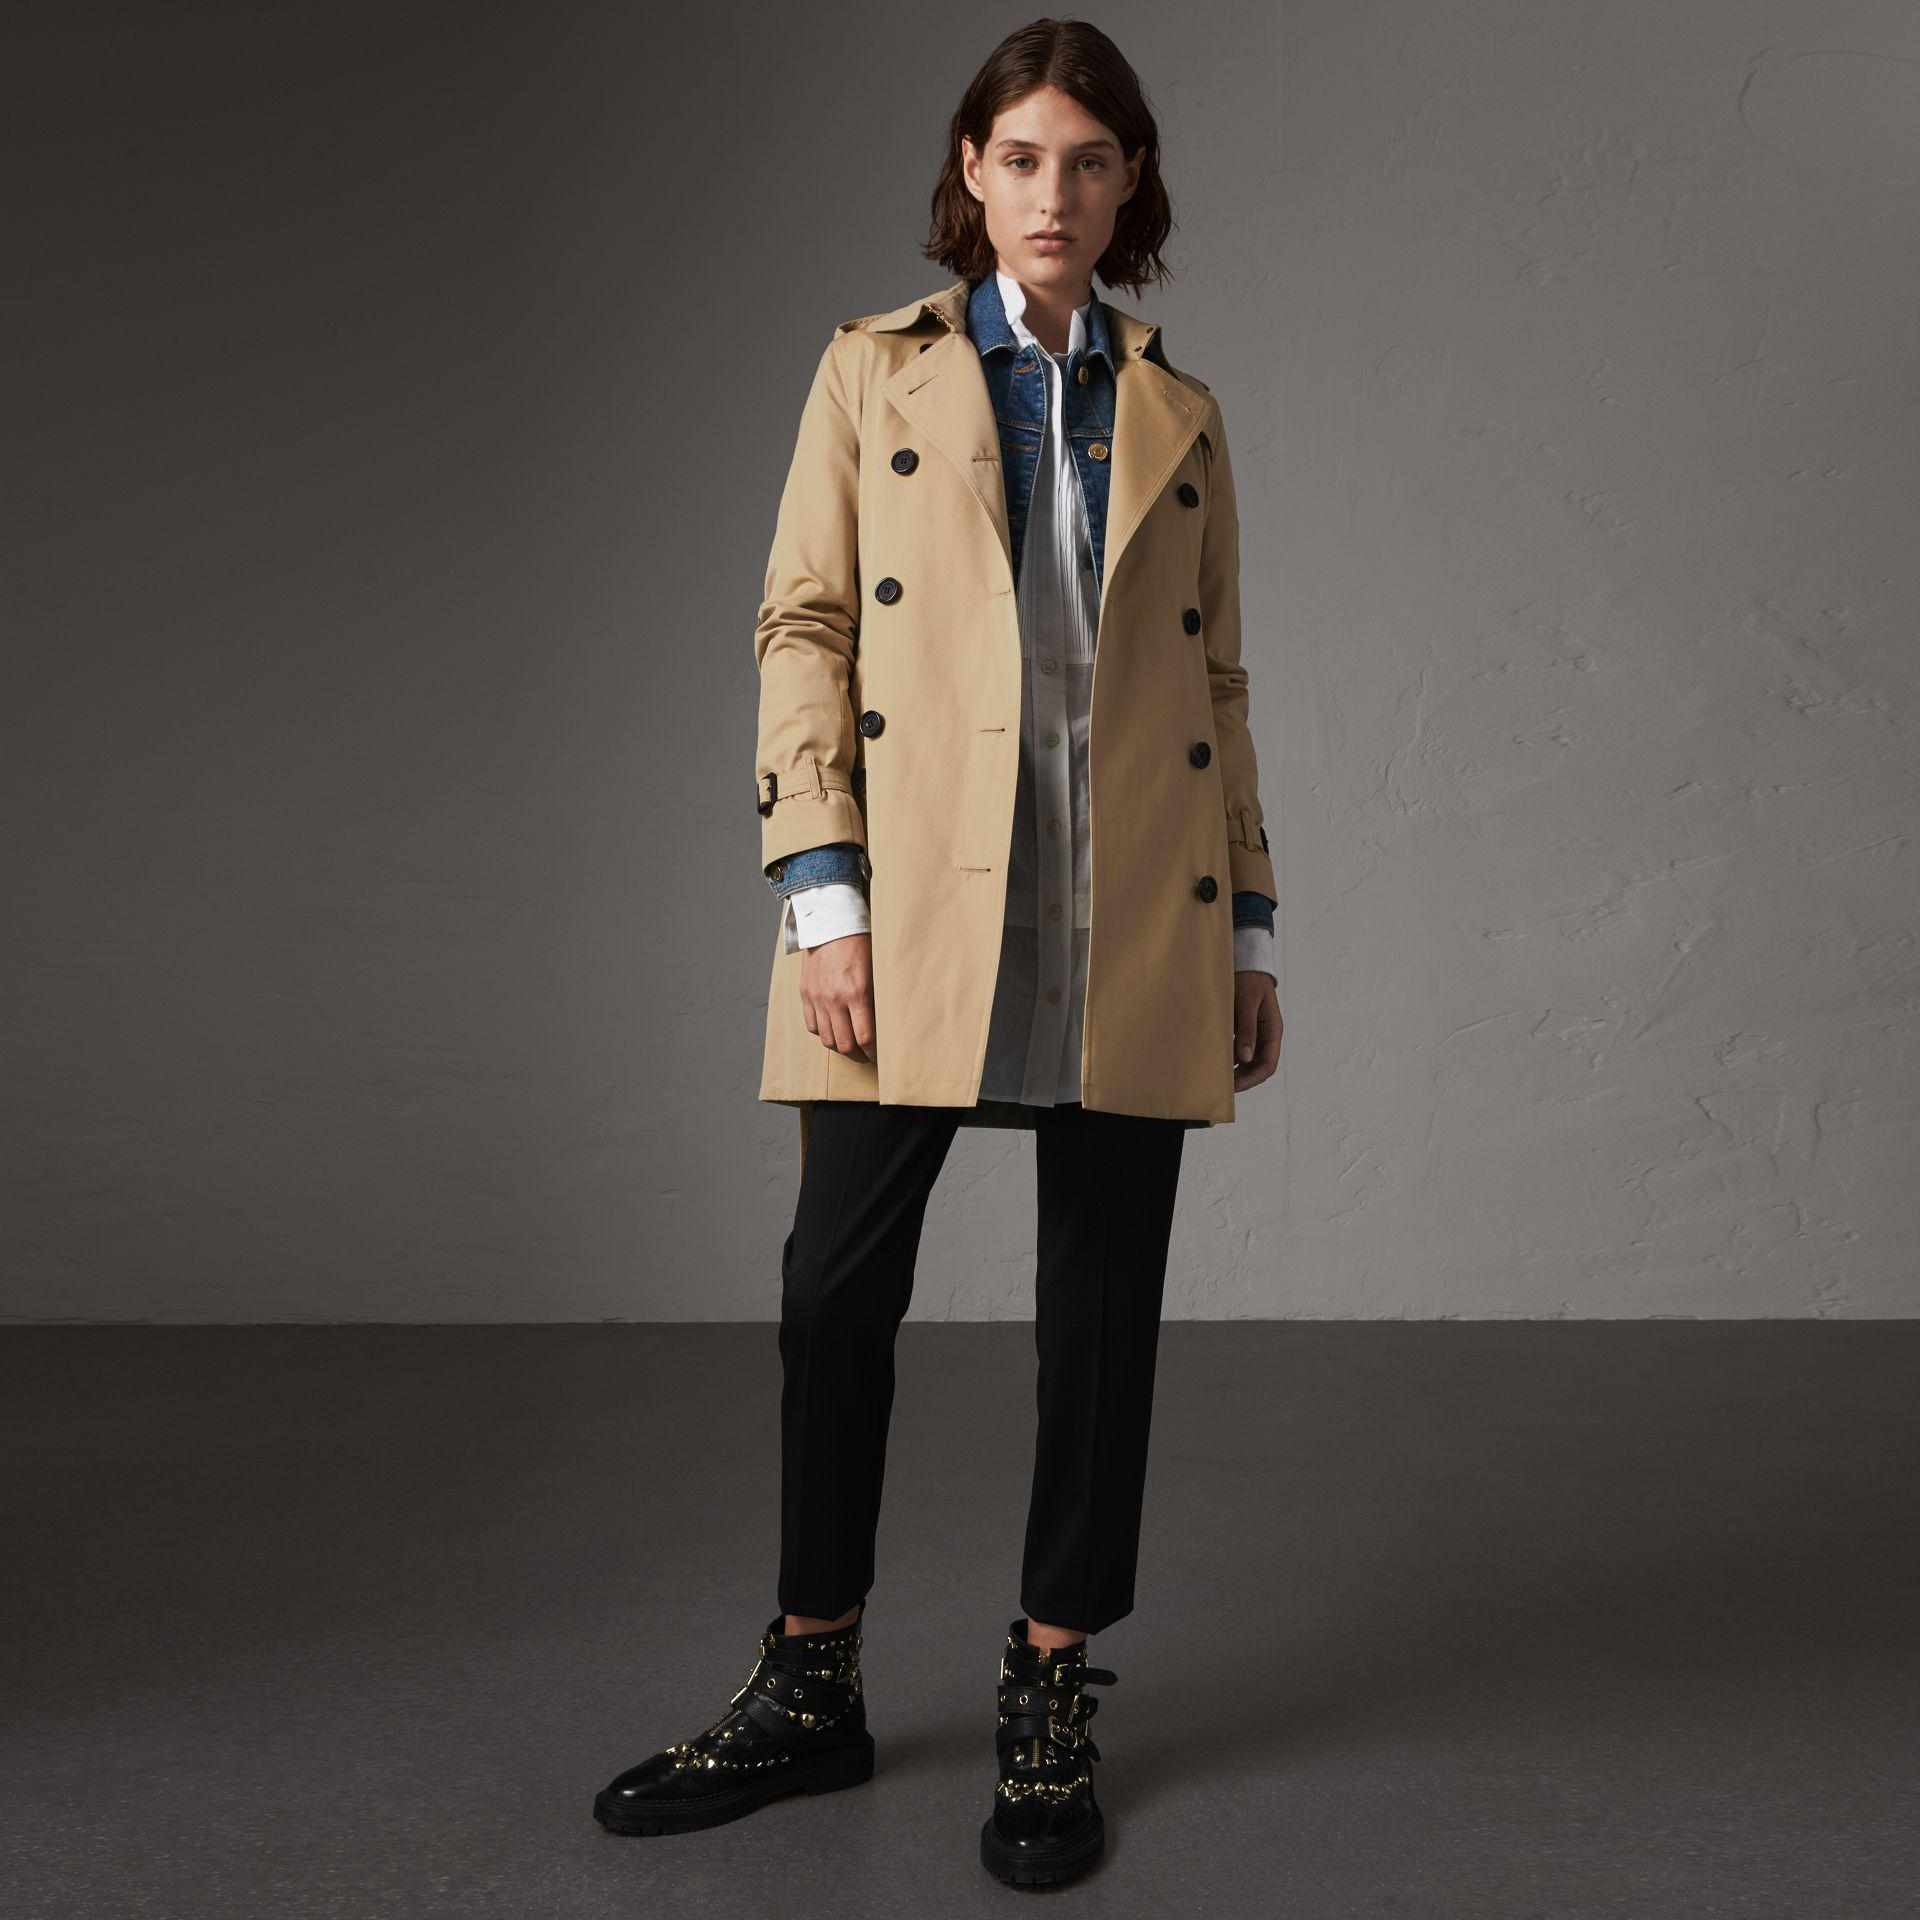 5c1a025dc Burberry Cotton The Kensington – Mid-length Heritage Trench Coat ...